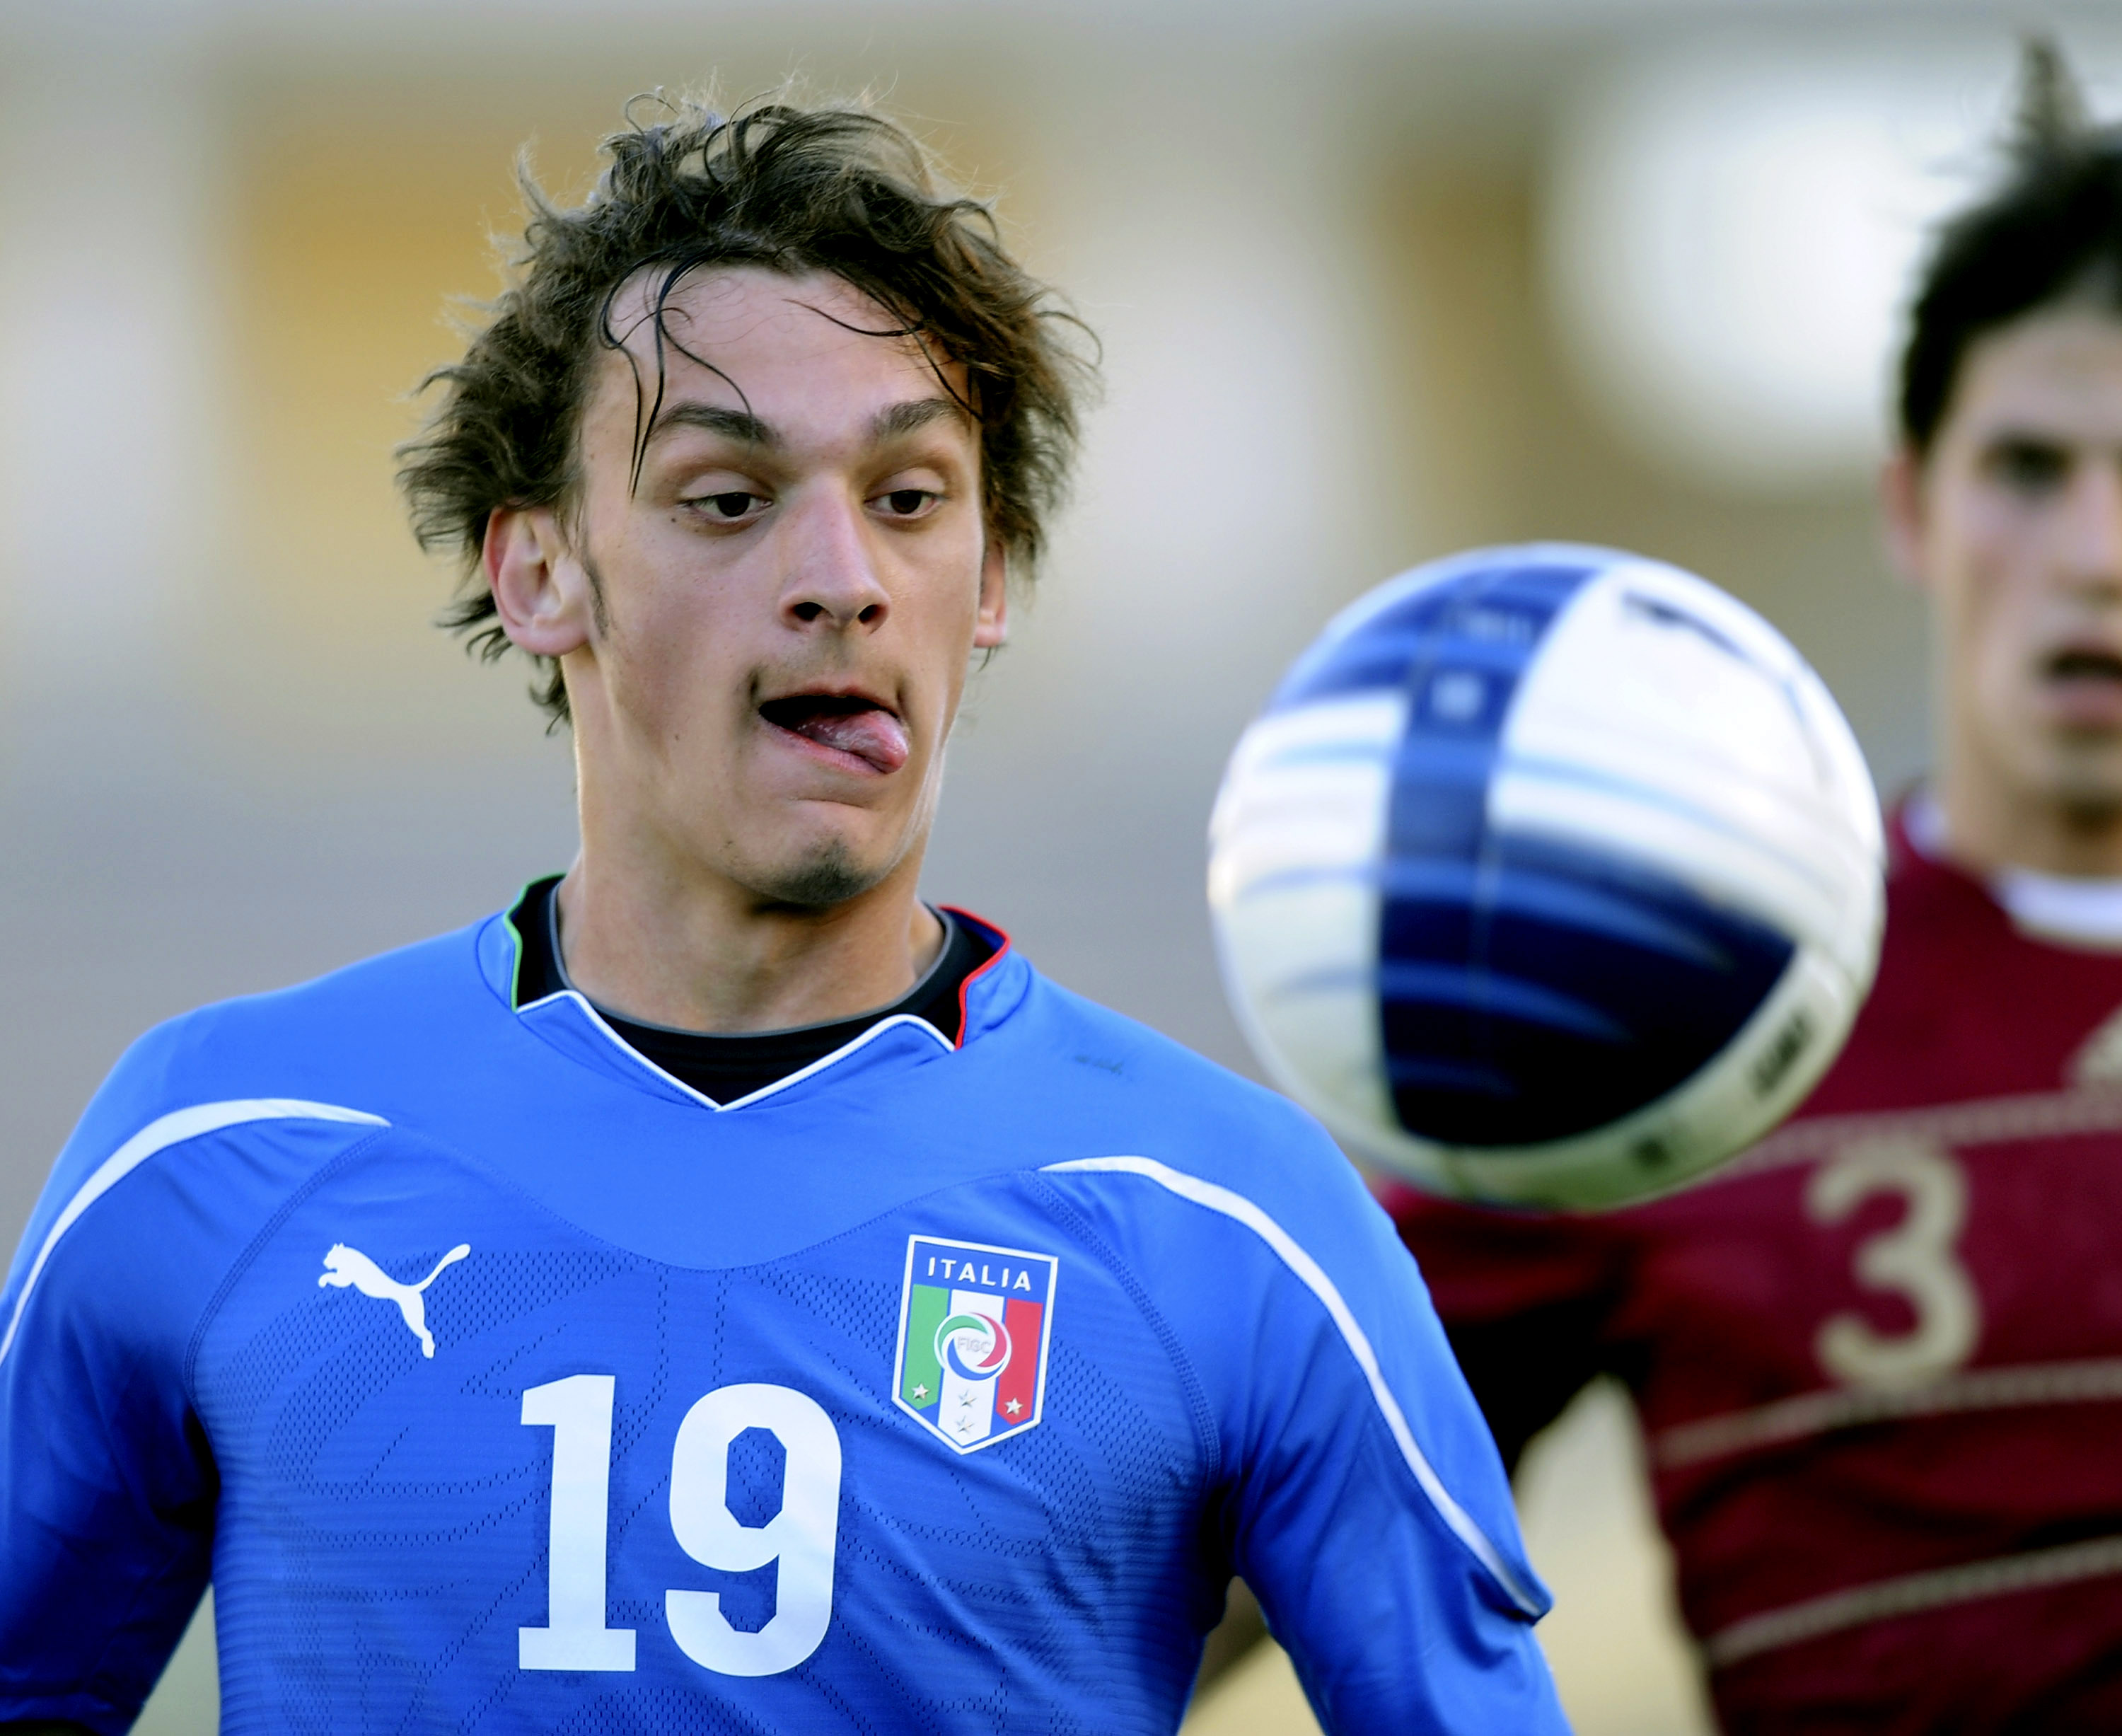 gabbiadini - photo #28